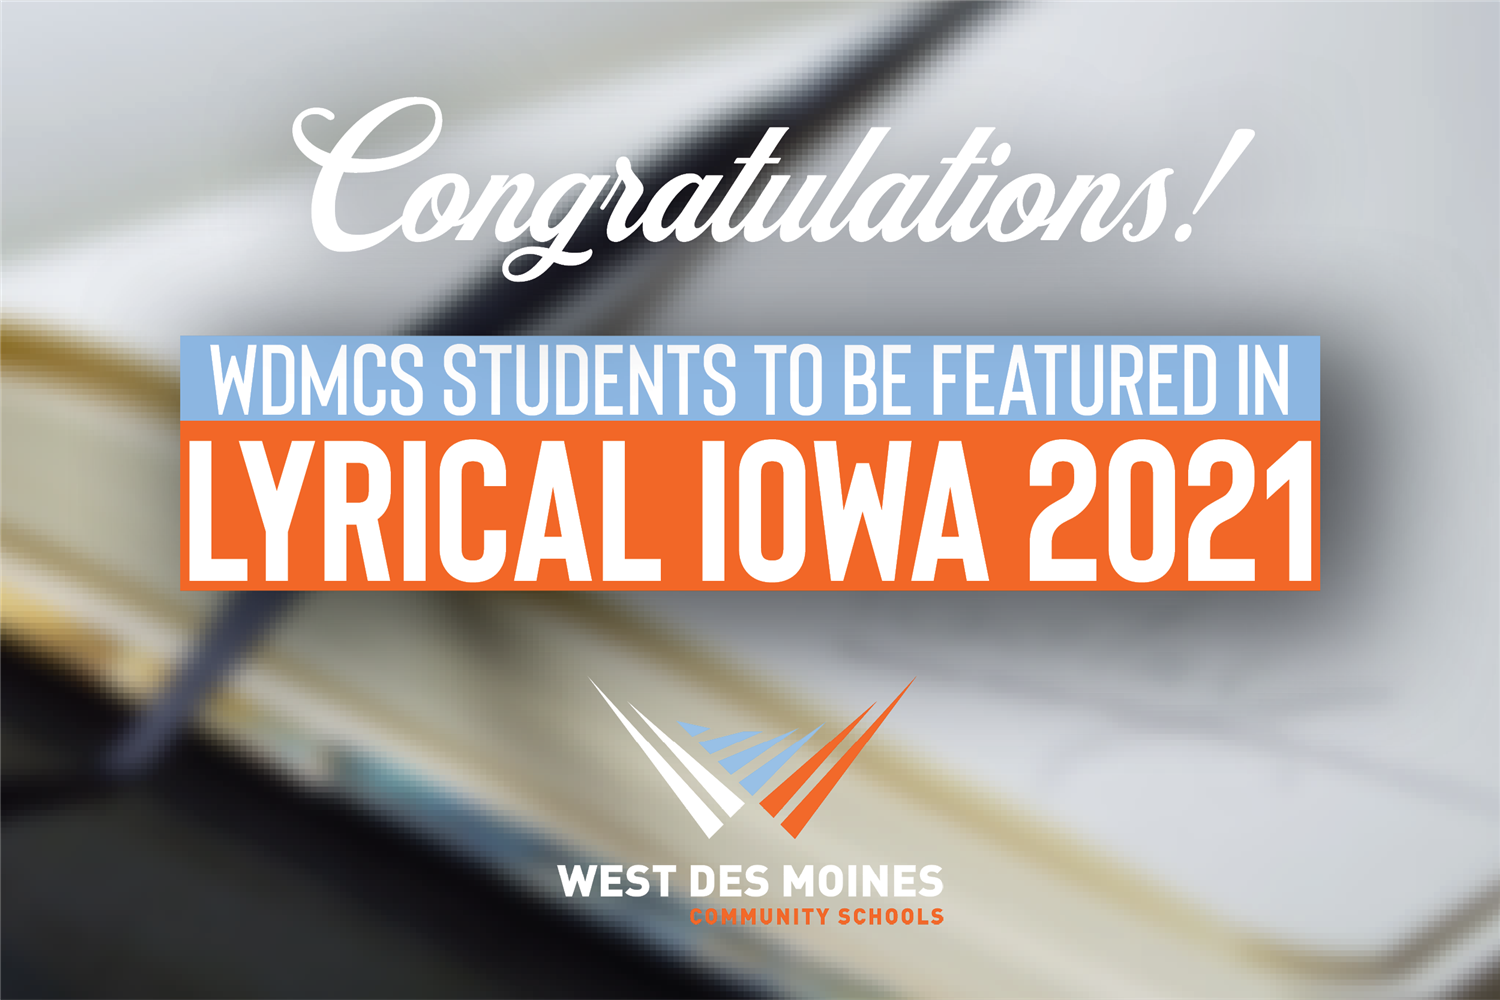 wdmcs students to be featured in lyrical iowa 2021